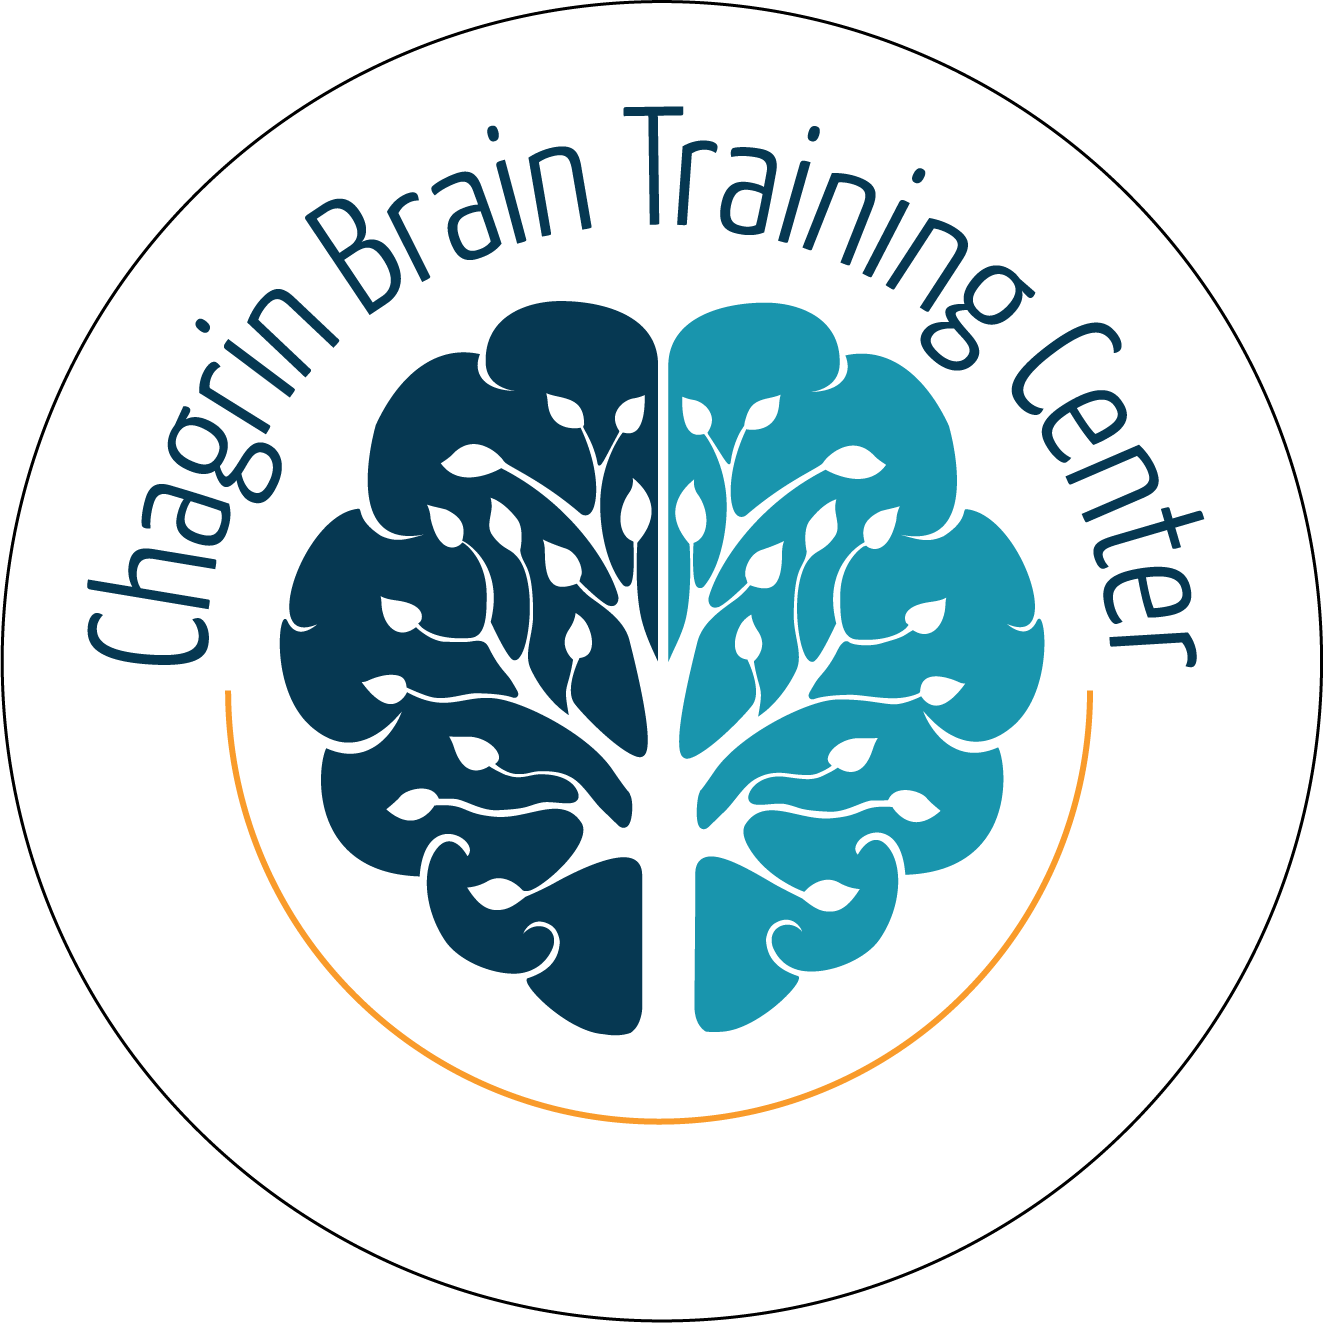 Chagrin Brain Training Center